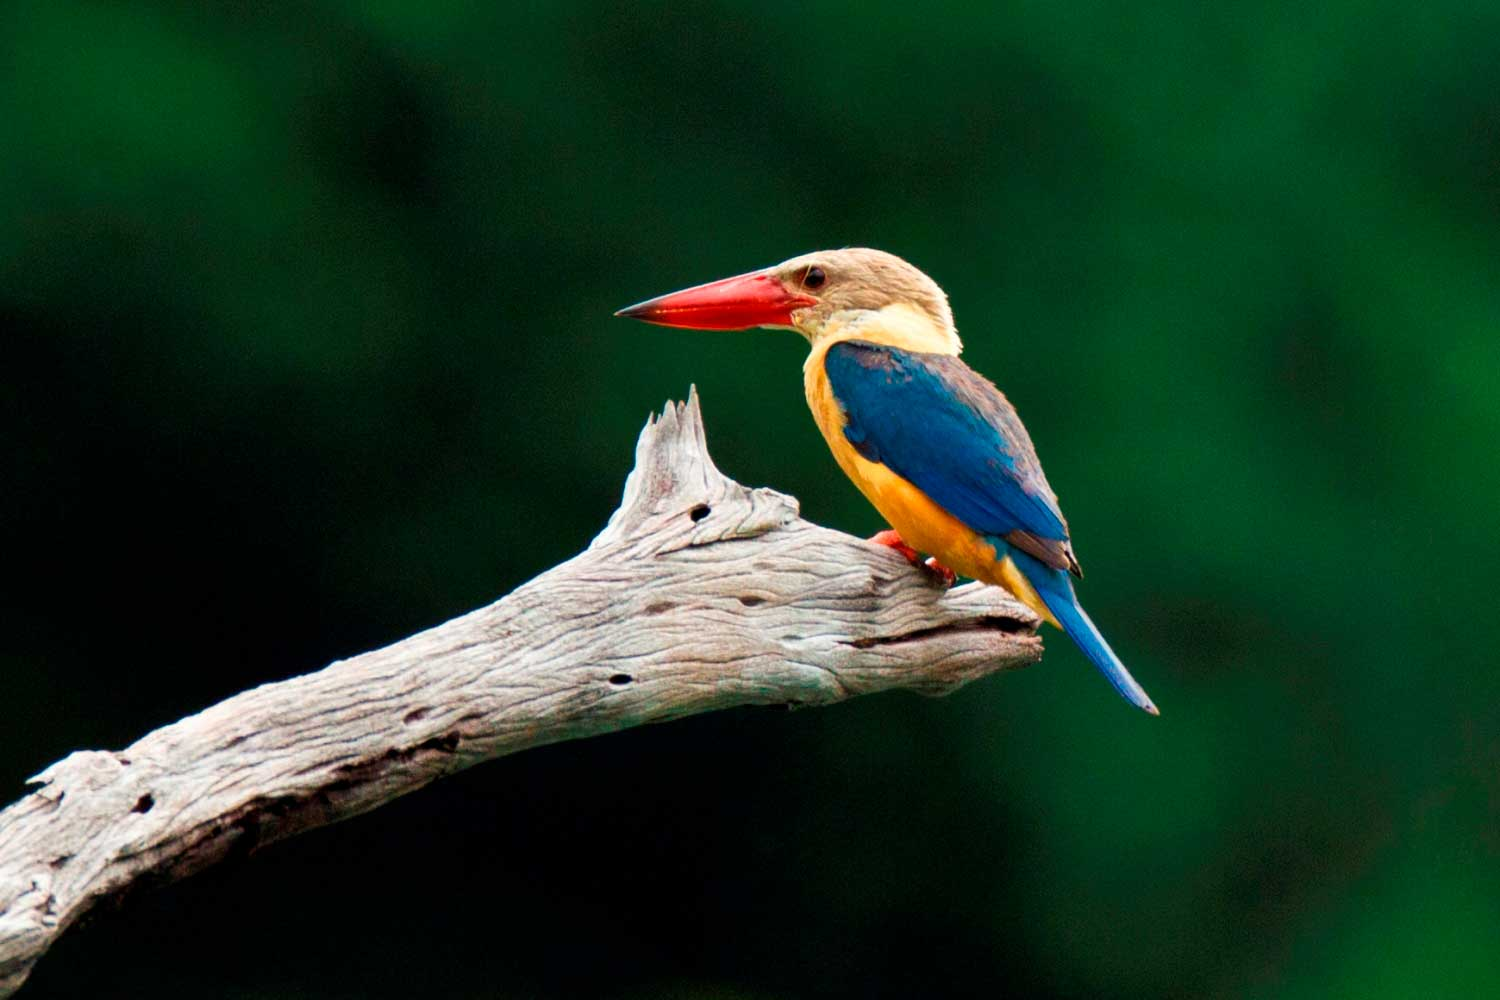 Thailand rainforest - kingfishers